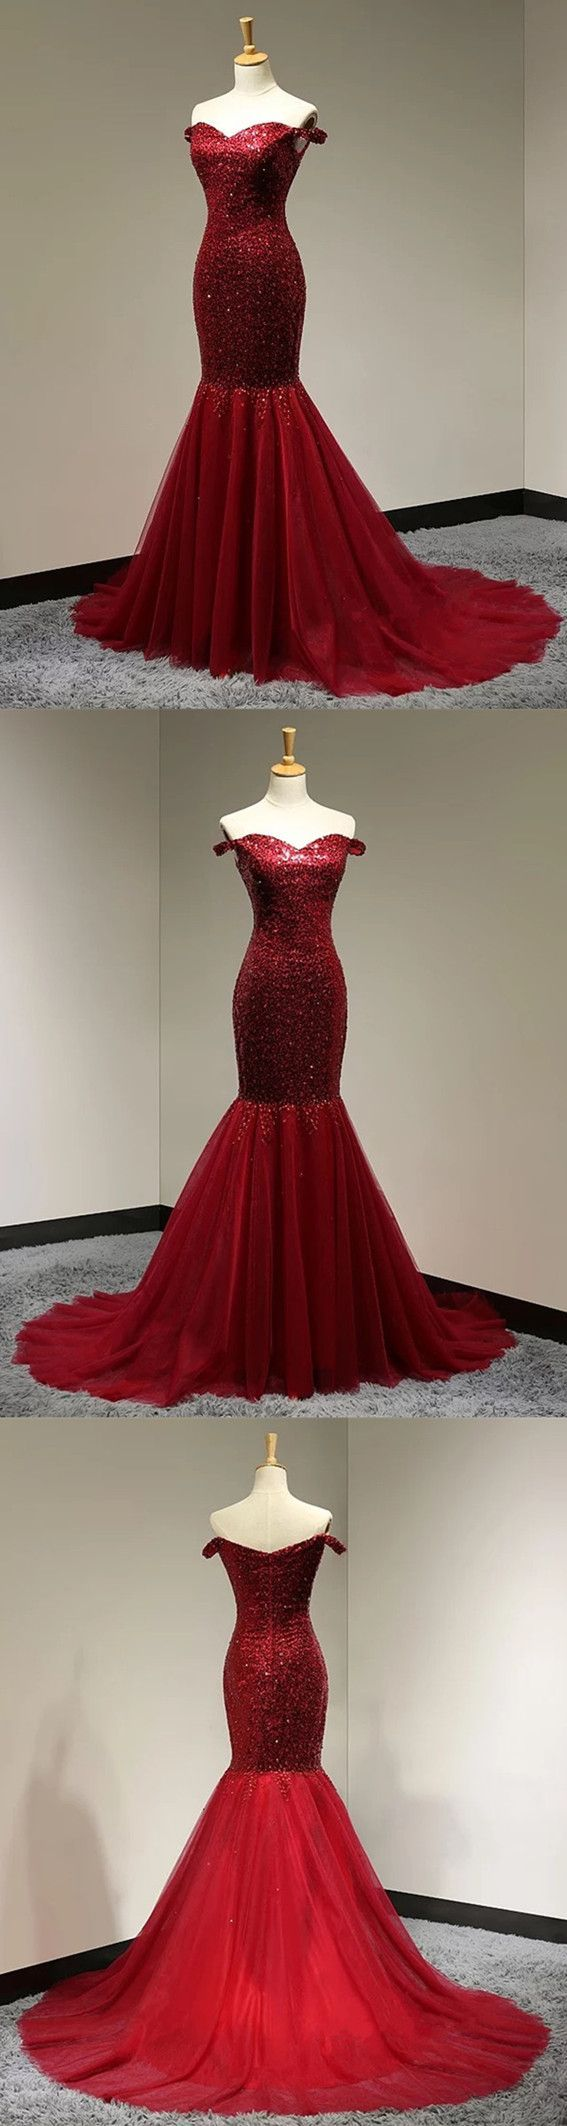 Burgundy sequins sweetheart mermaid evening dress off shoulder prom